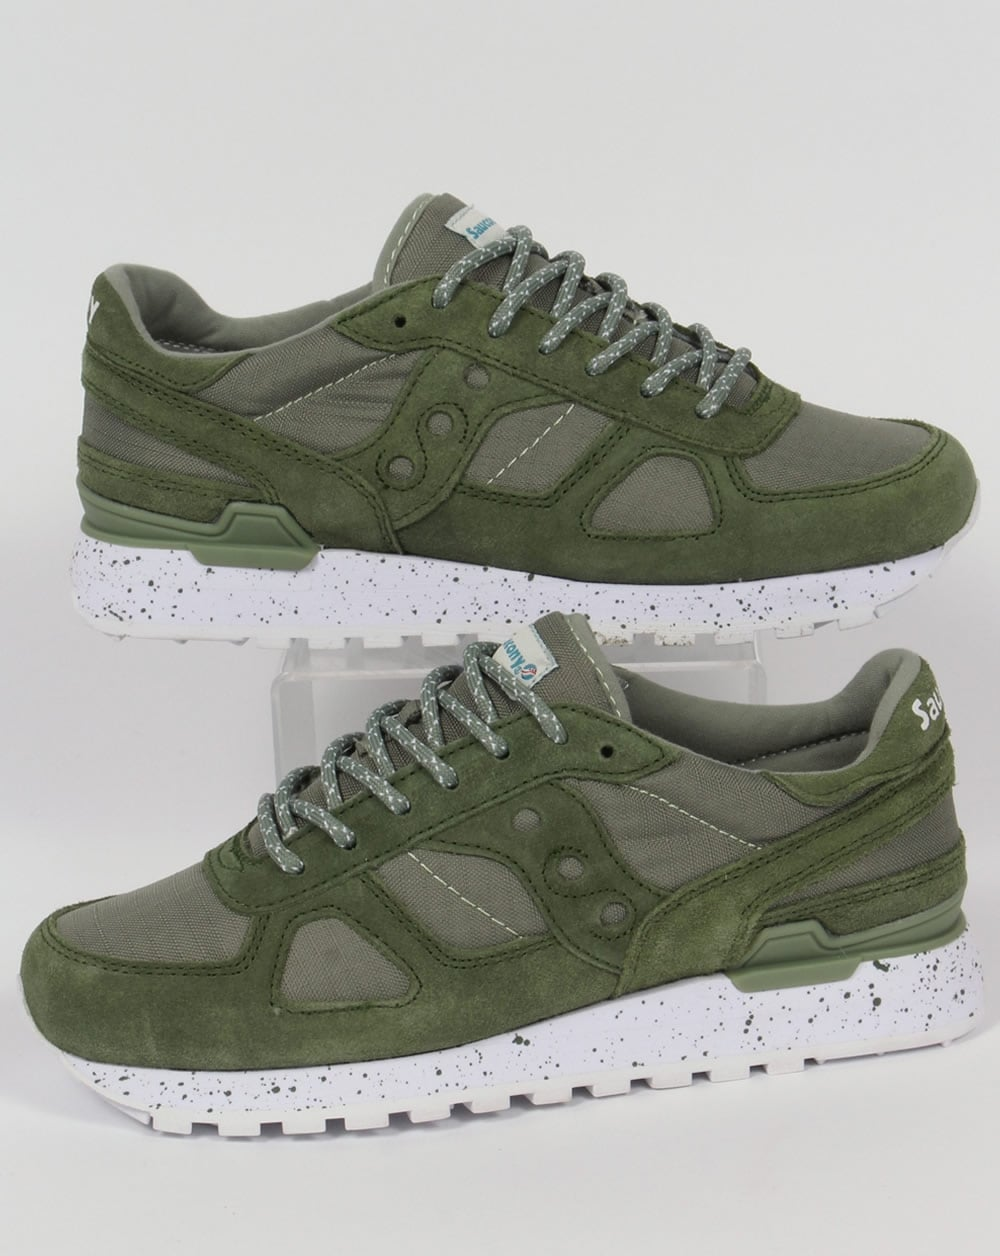 52cb8d6d33b9b Saucony Shadow Original Ripstop Trainers Green,runners,shoes,80s,mens